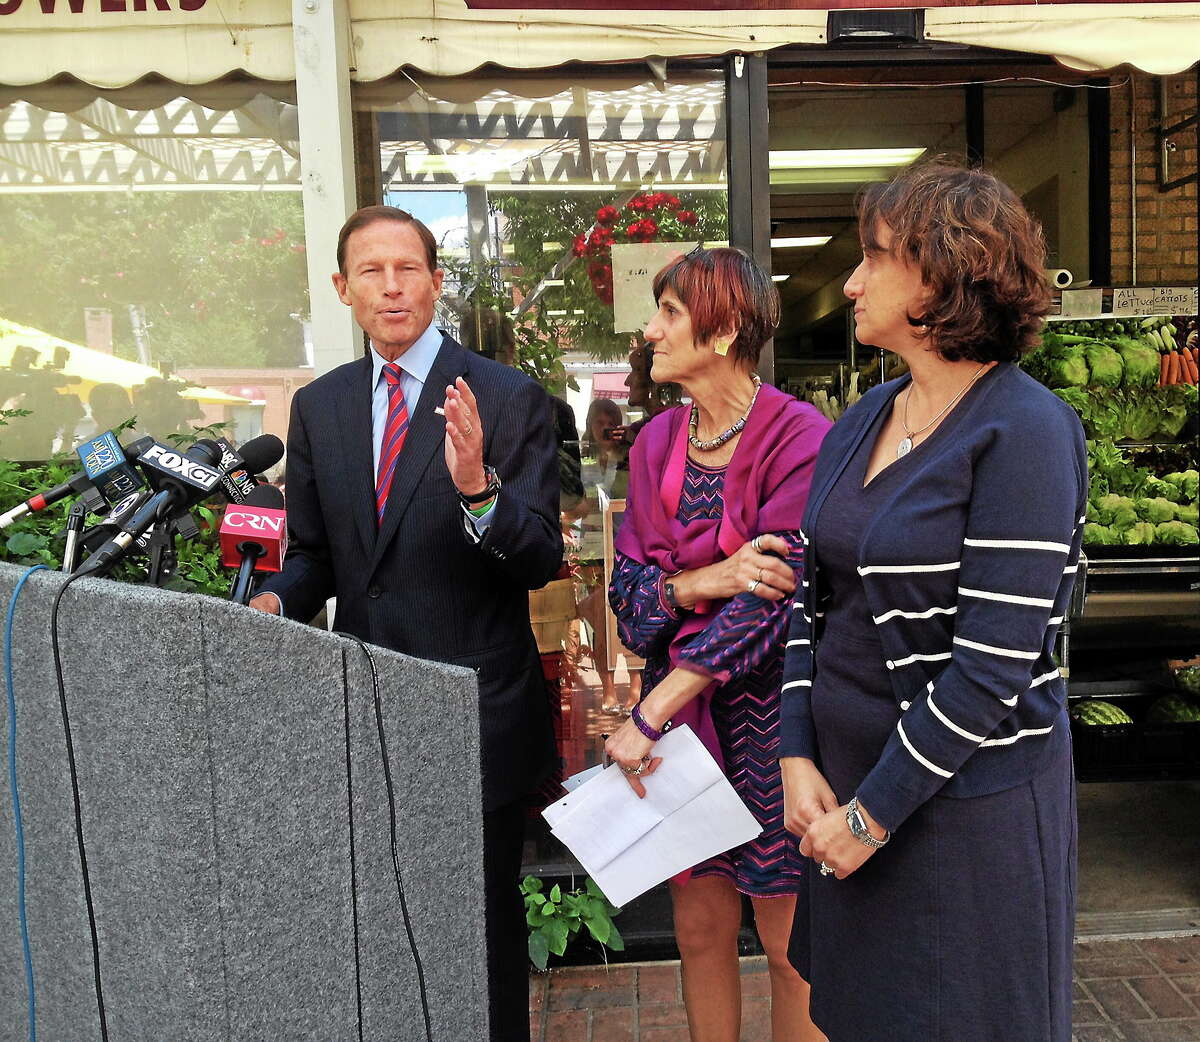 U.S. Sen. Richard Blumenthal, D-Conn., U.S. Rep. Rosa DeLauro, D-3, and Marlene Schwartz, director of the Yale Rudd Center for Food Policy and Obesity, speak on their proposals for the FDA's proposed new nutrition labels.